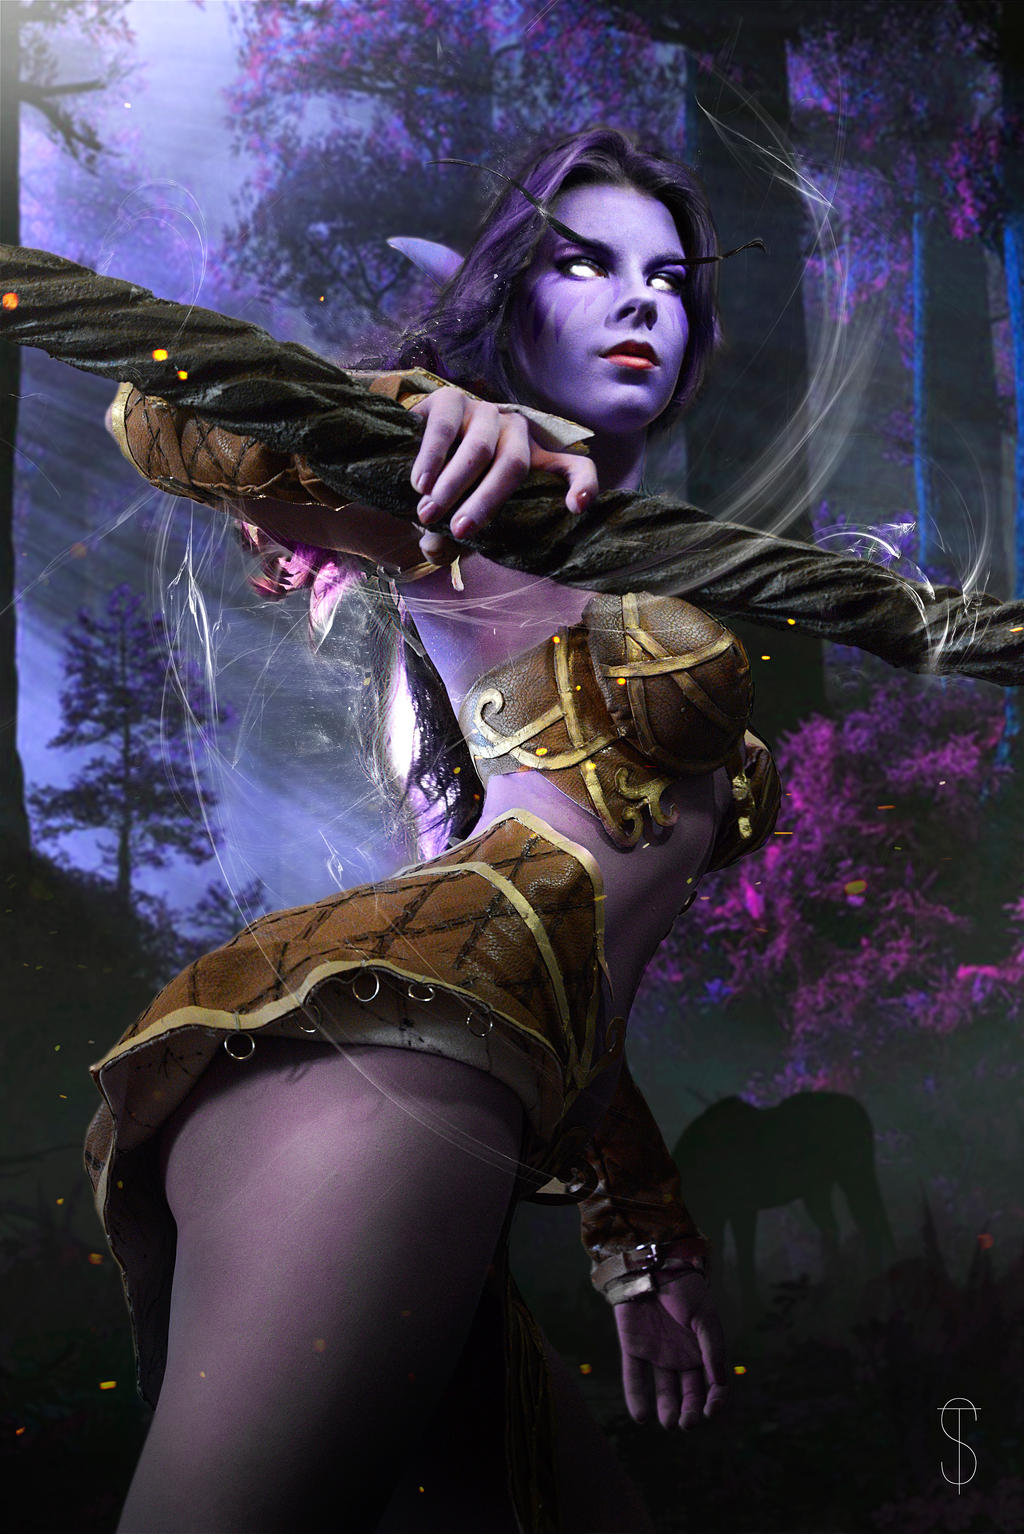 World of warcraft clothes nude